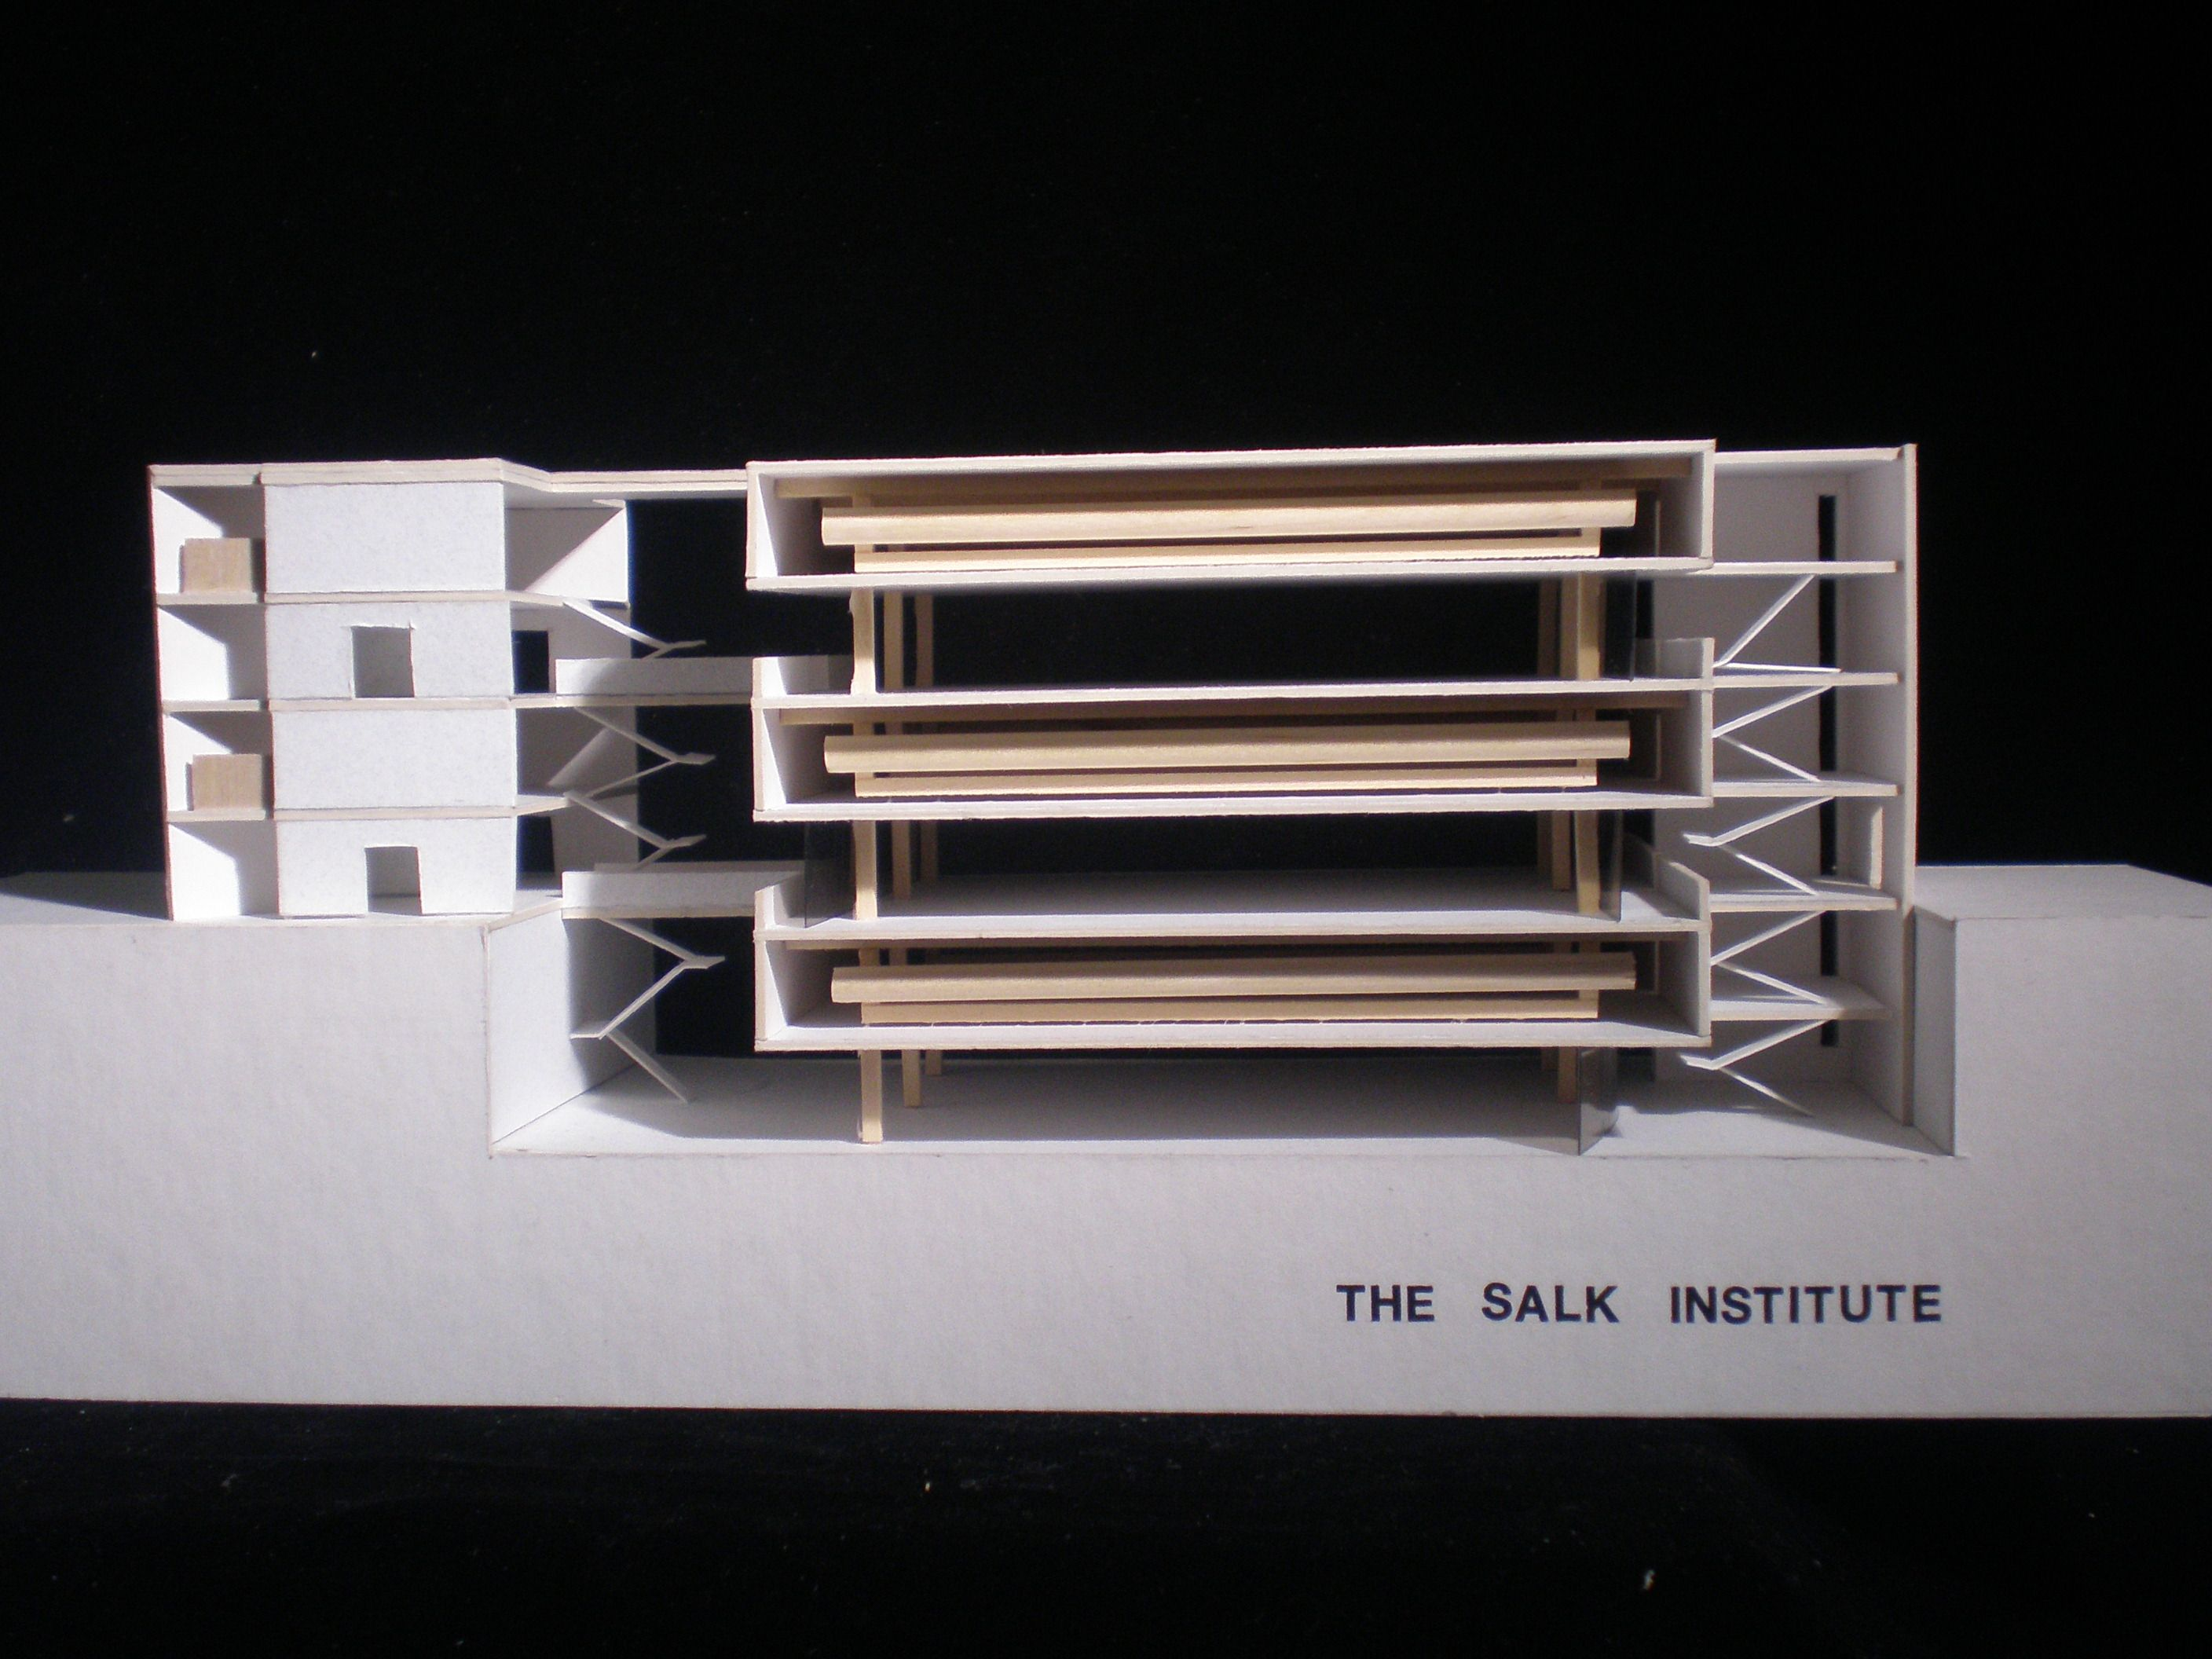 an analysis of the architectural design of louis kahns the salk institute Salk institute for biological studies archives/louis i kahn collection, architectural archives, university of pennsylvania the salk has been responsible for major breakthroughs in neurobiology, genome mapping, and stem cell research elements of the design, such as the way natural light illuminates the.